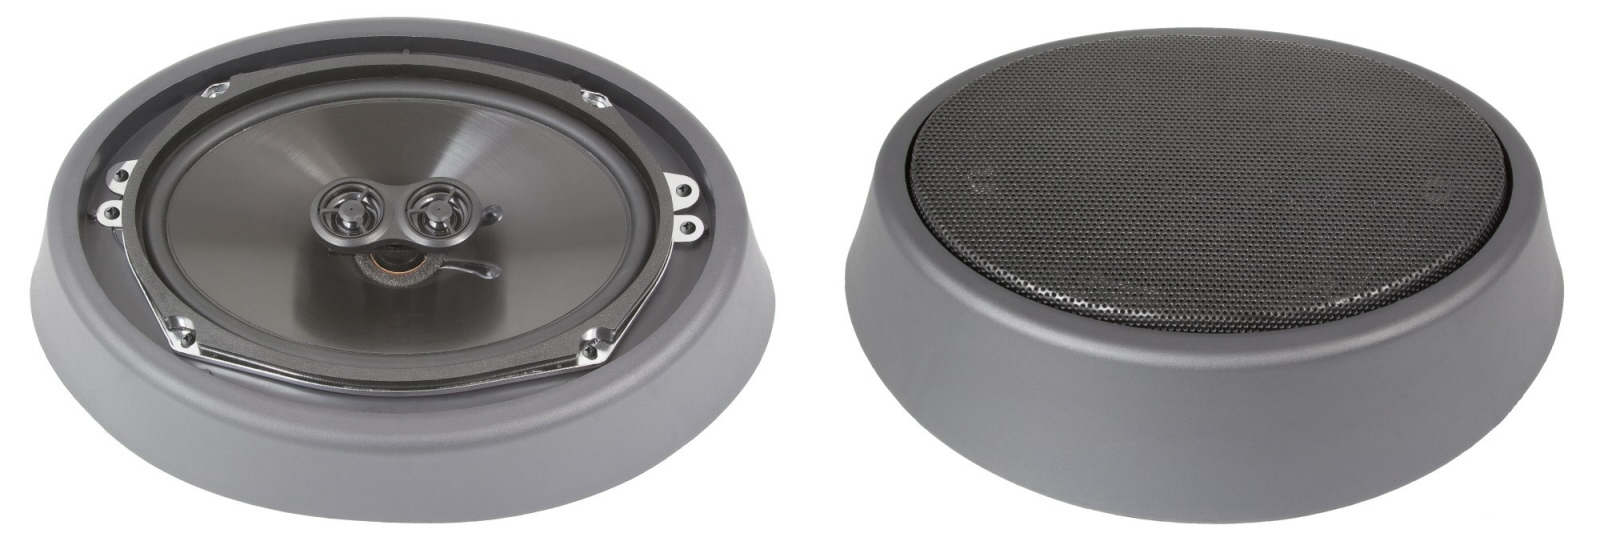 Retrosound Retropod 6 X 9 Surface Mount Speakers Rpod9